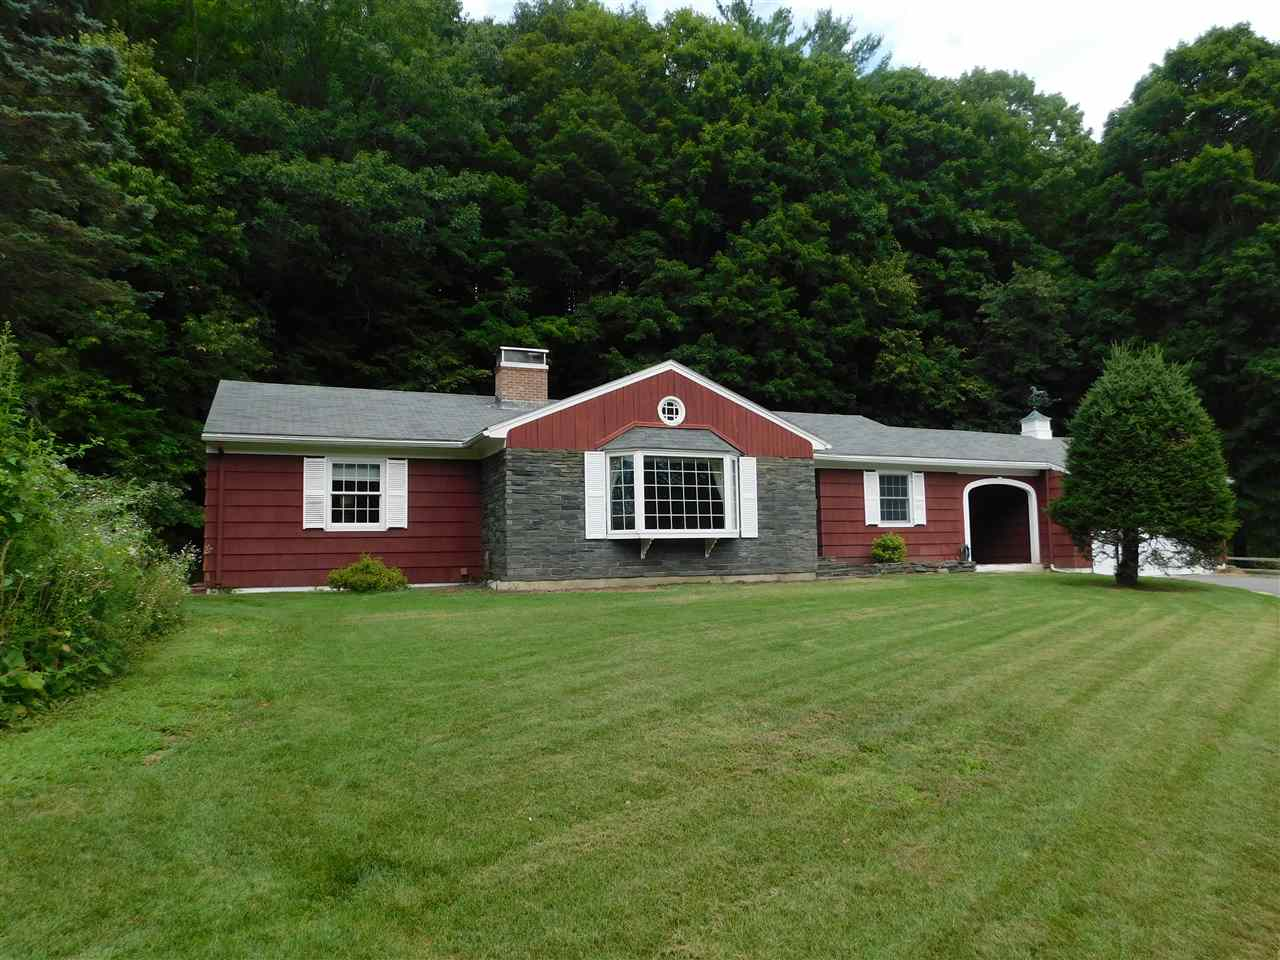 MLS 4773361: 274 Gifford Road, Hartford VT